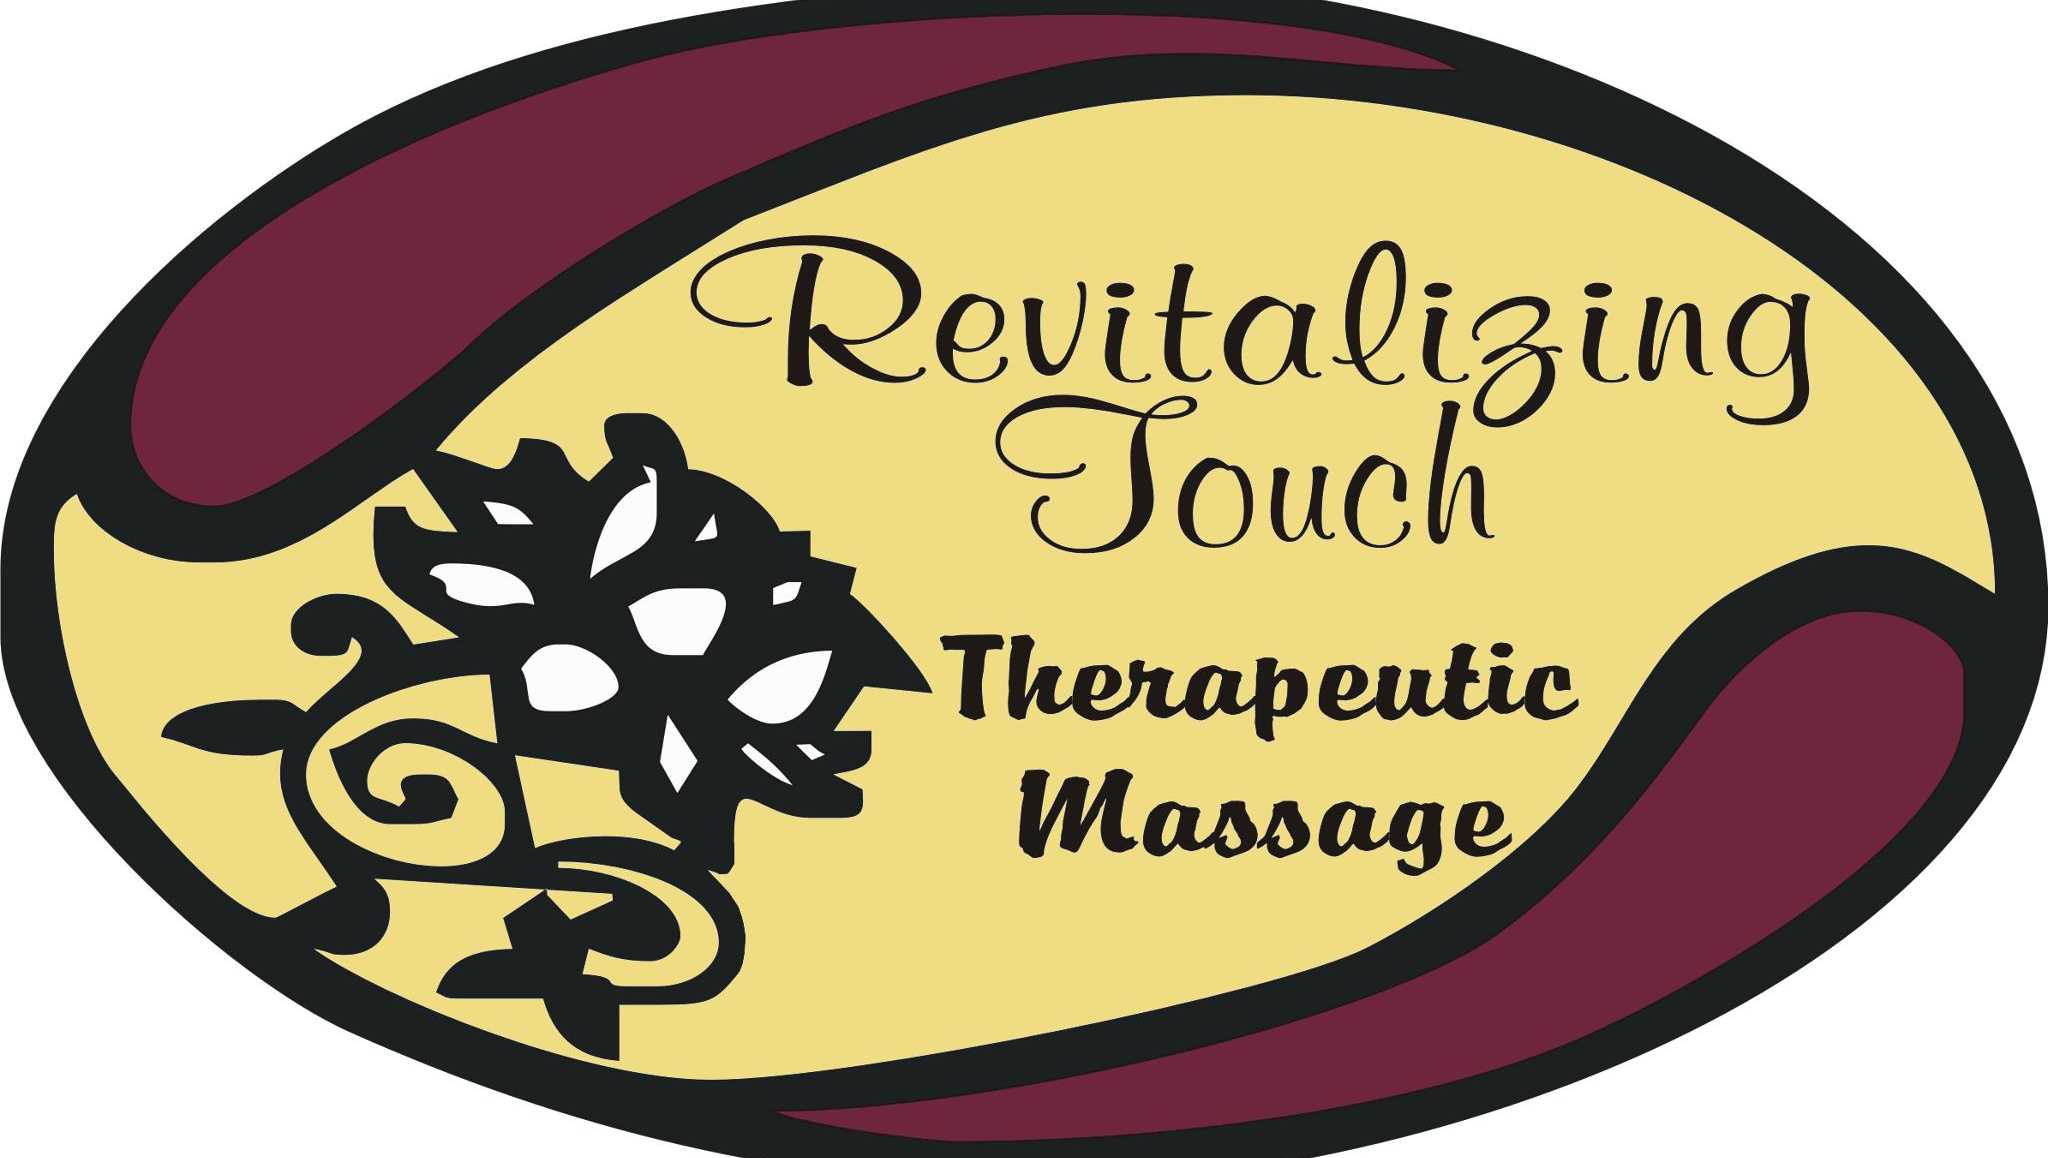 4. (tie) Revitalizing Touch Therapeutic Massage in Northwood